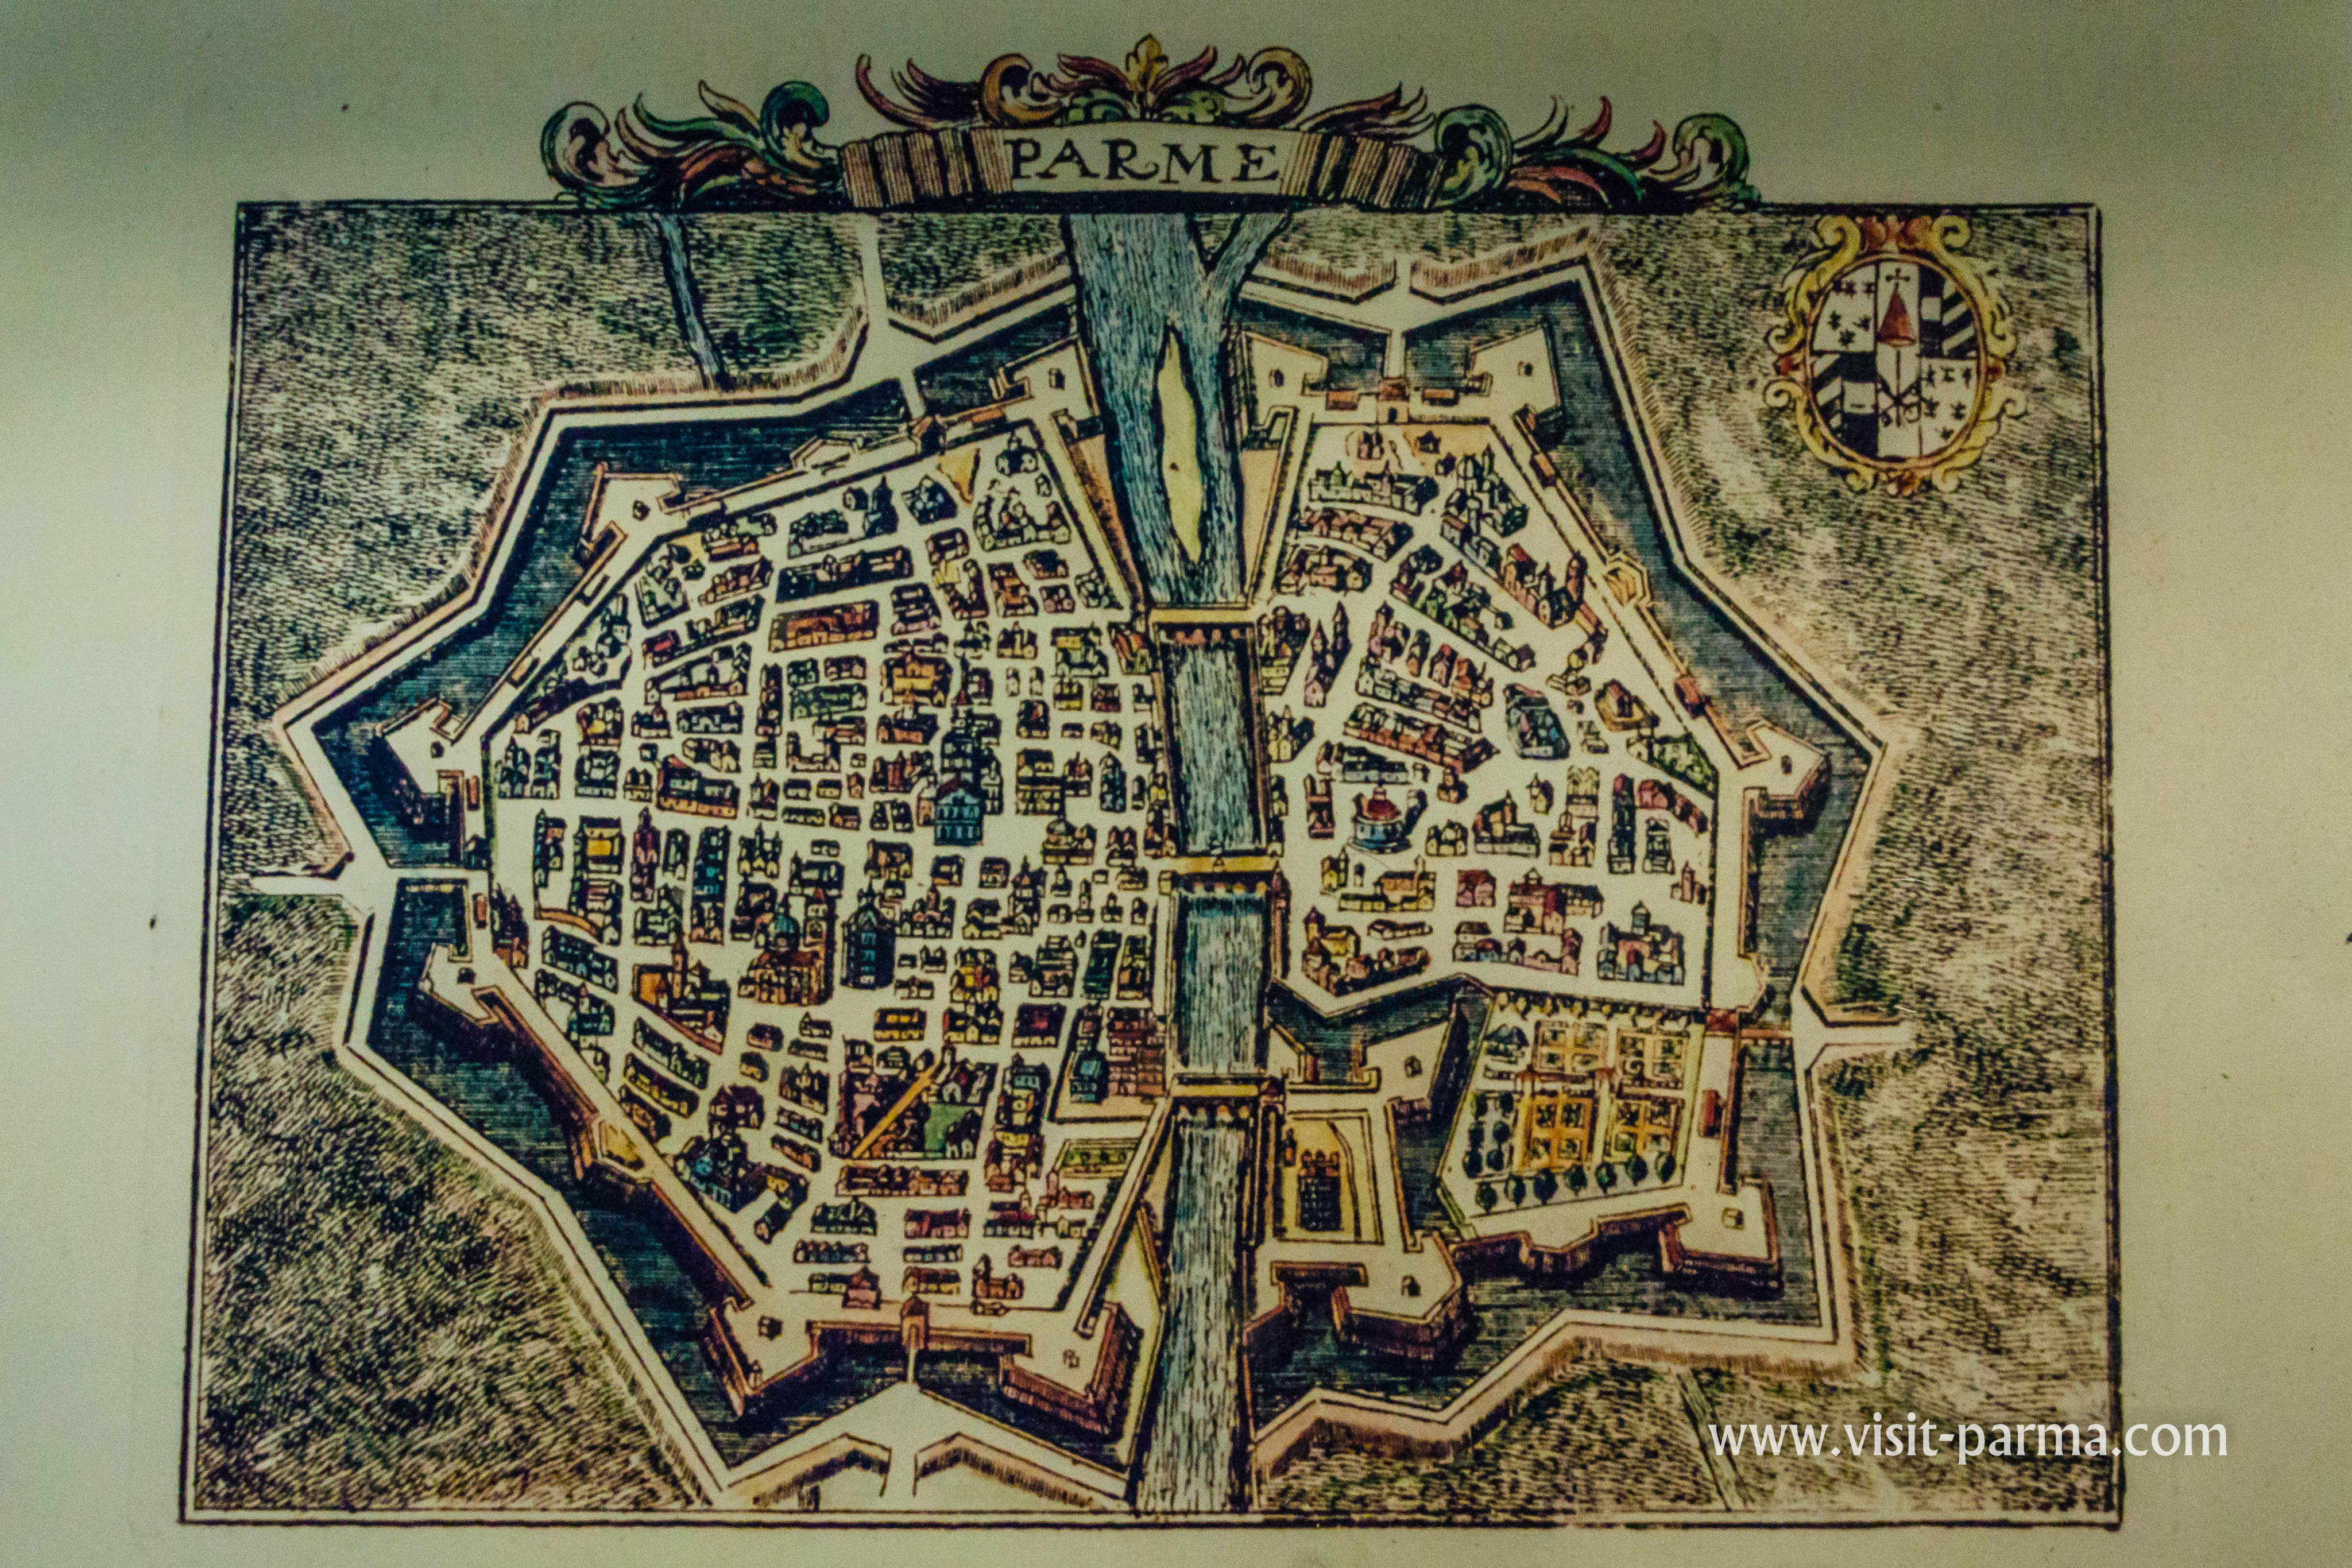 The history of Parma